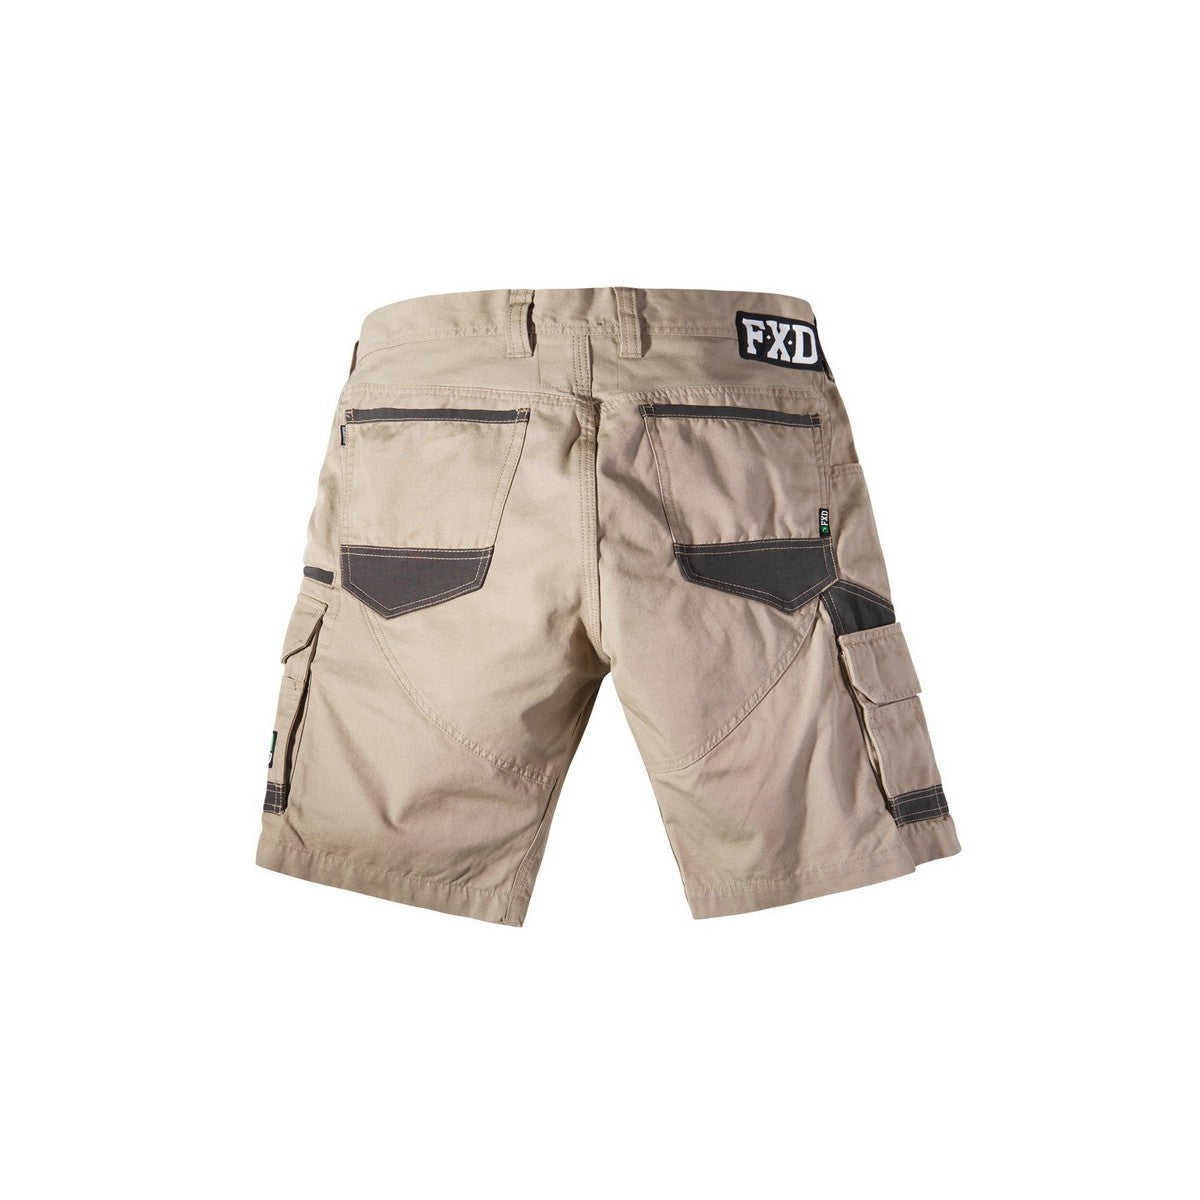 Image of FXD WS-1 SHORTS